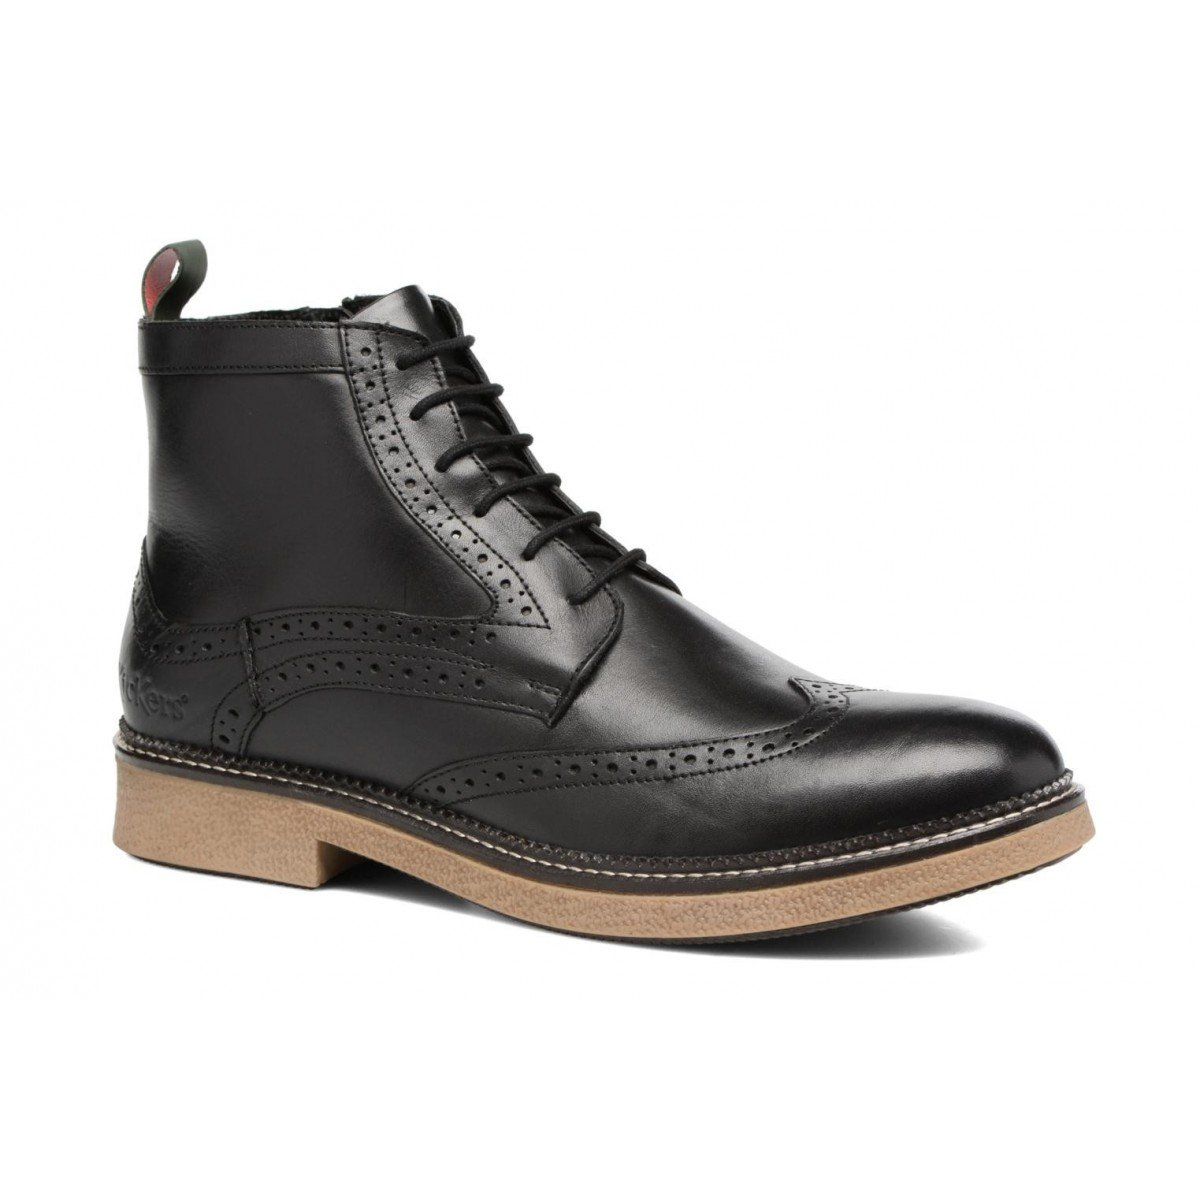 85ab8b46cabb5d Kickers Fortino, Bottines Classiques Homme: Amazon.fr: Chaussures et Sacs